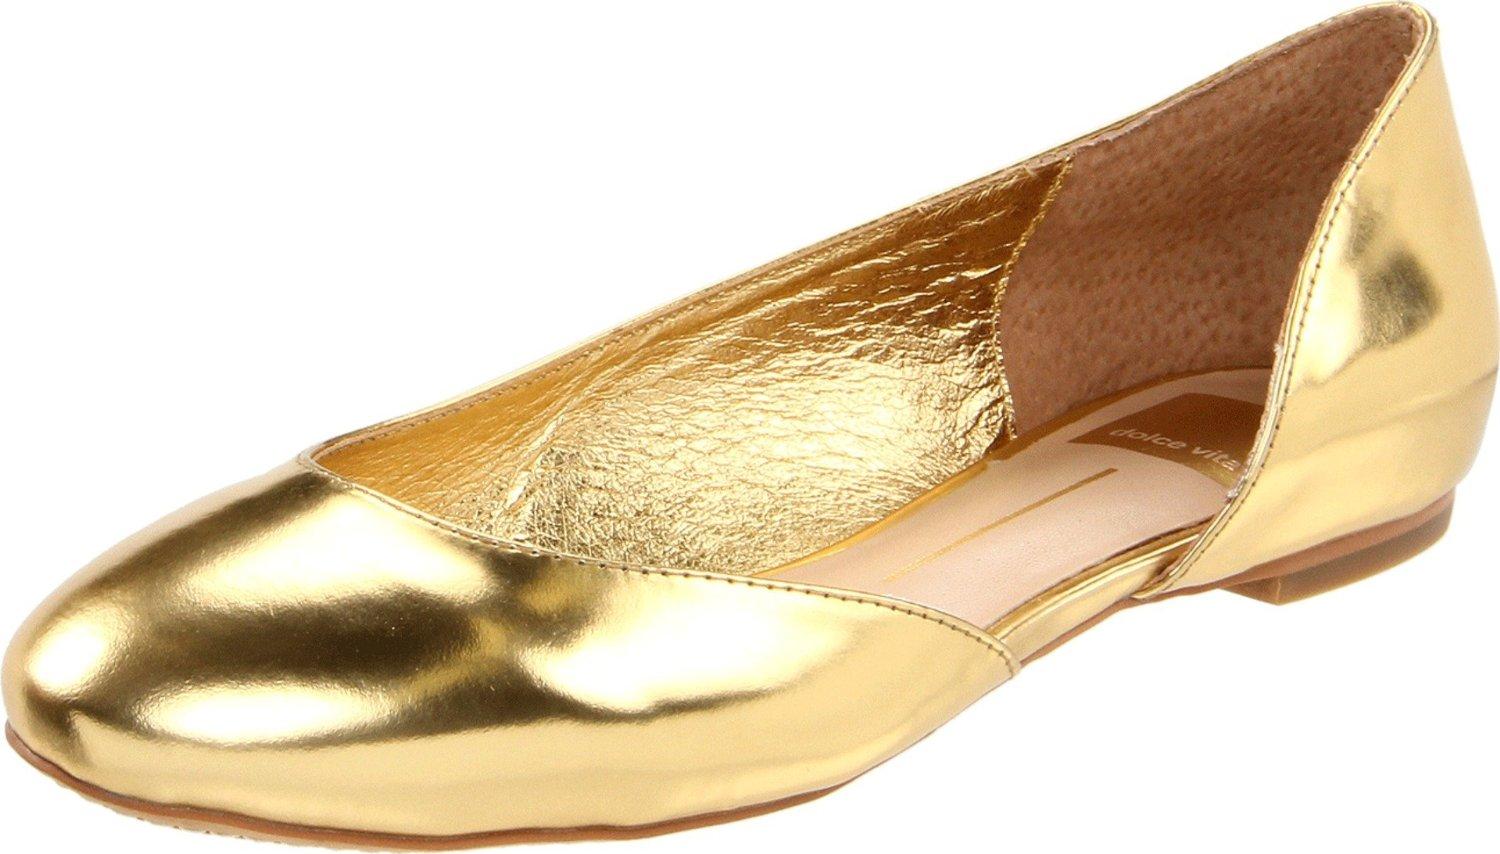 Dolce Vita Flat Shoes